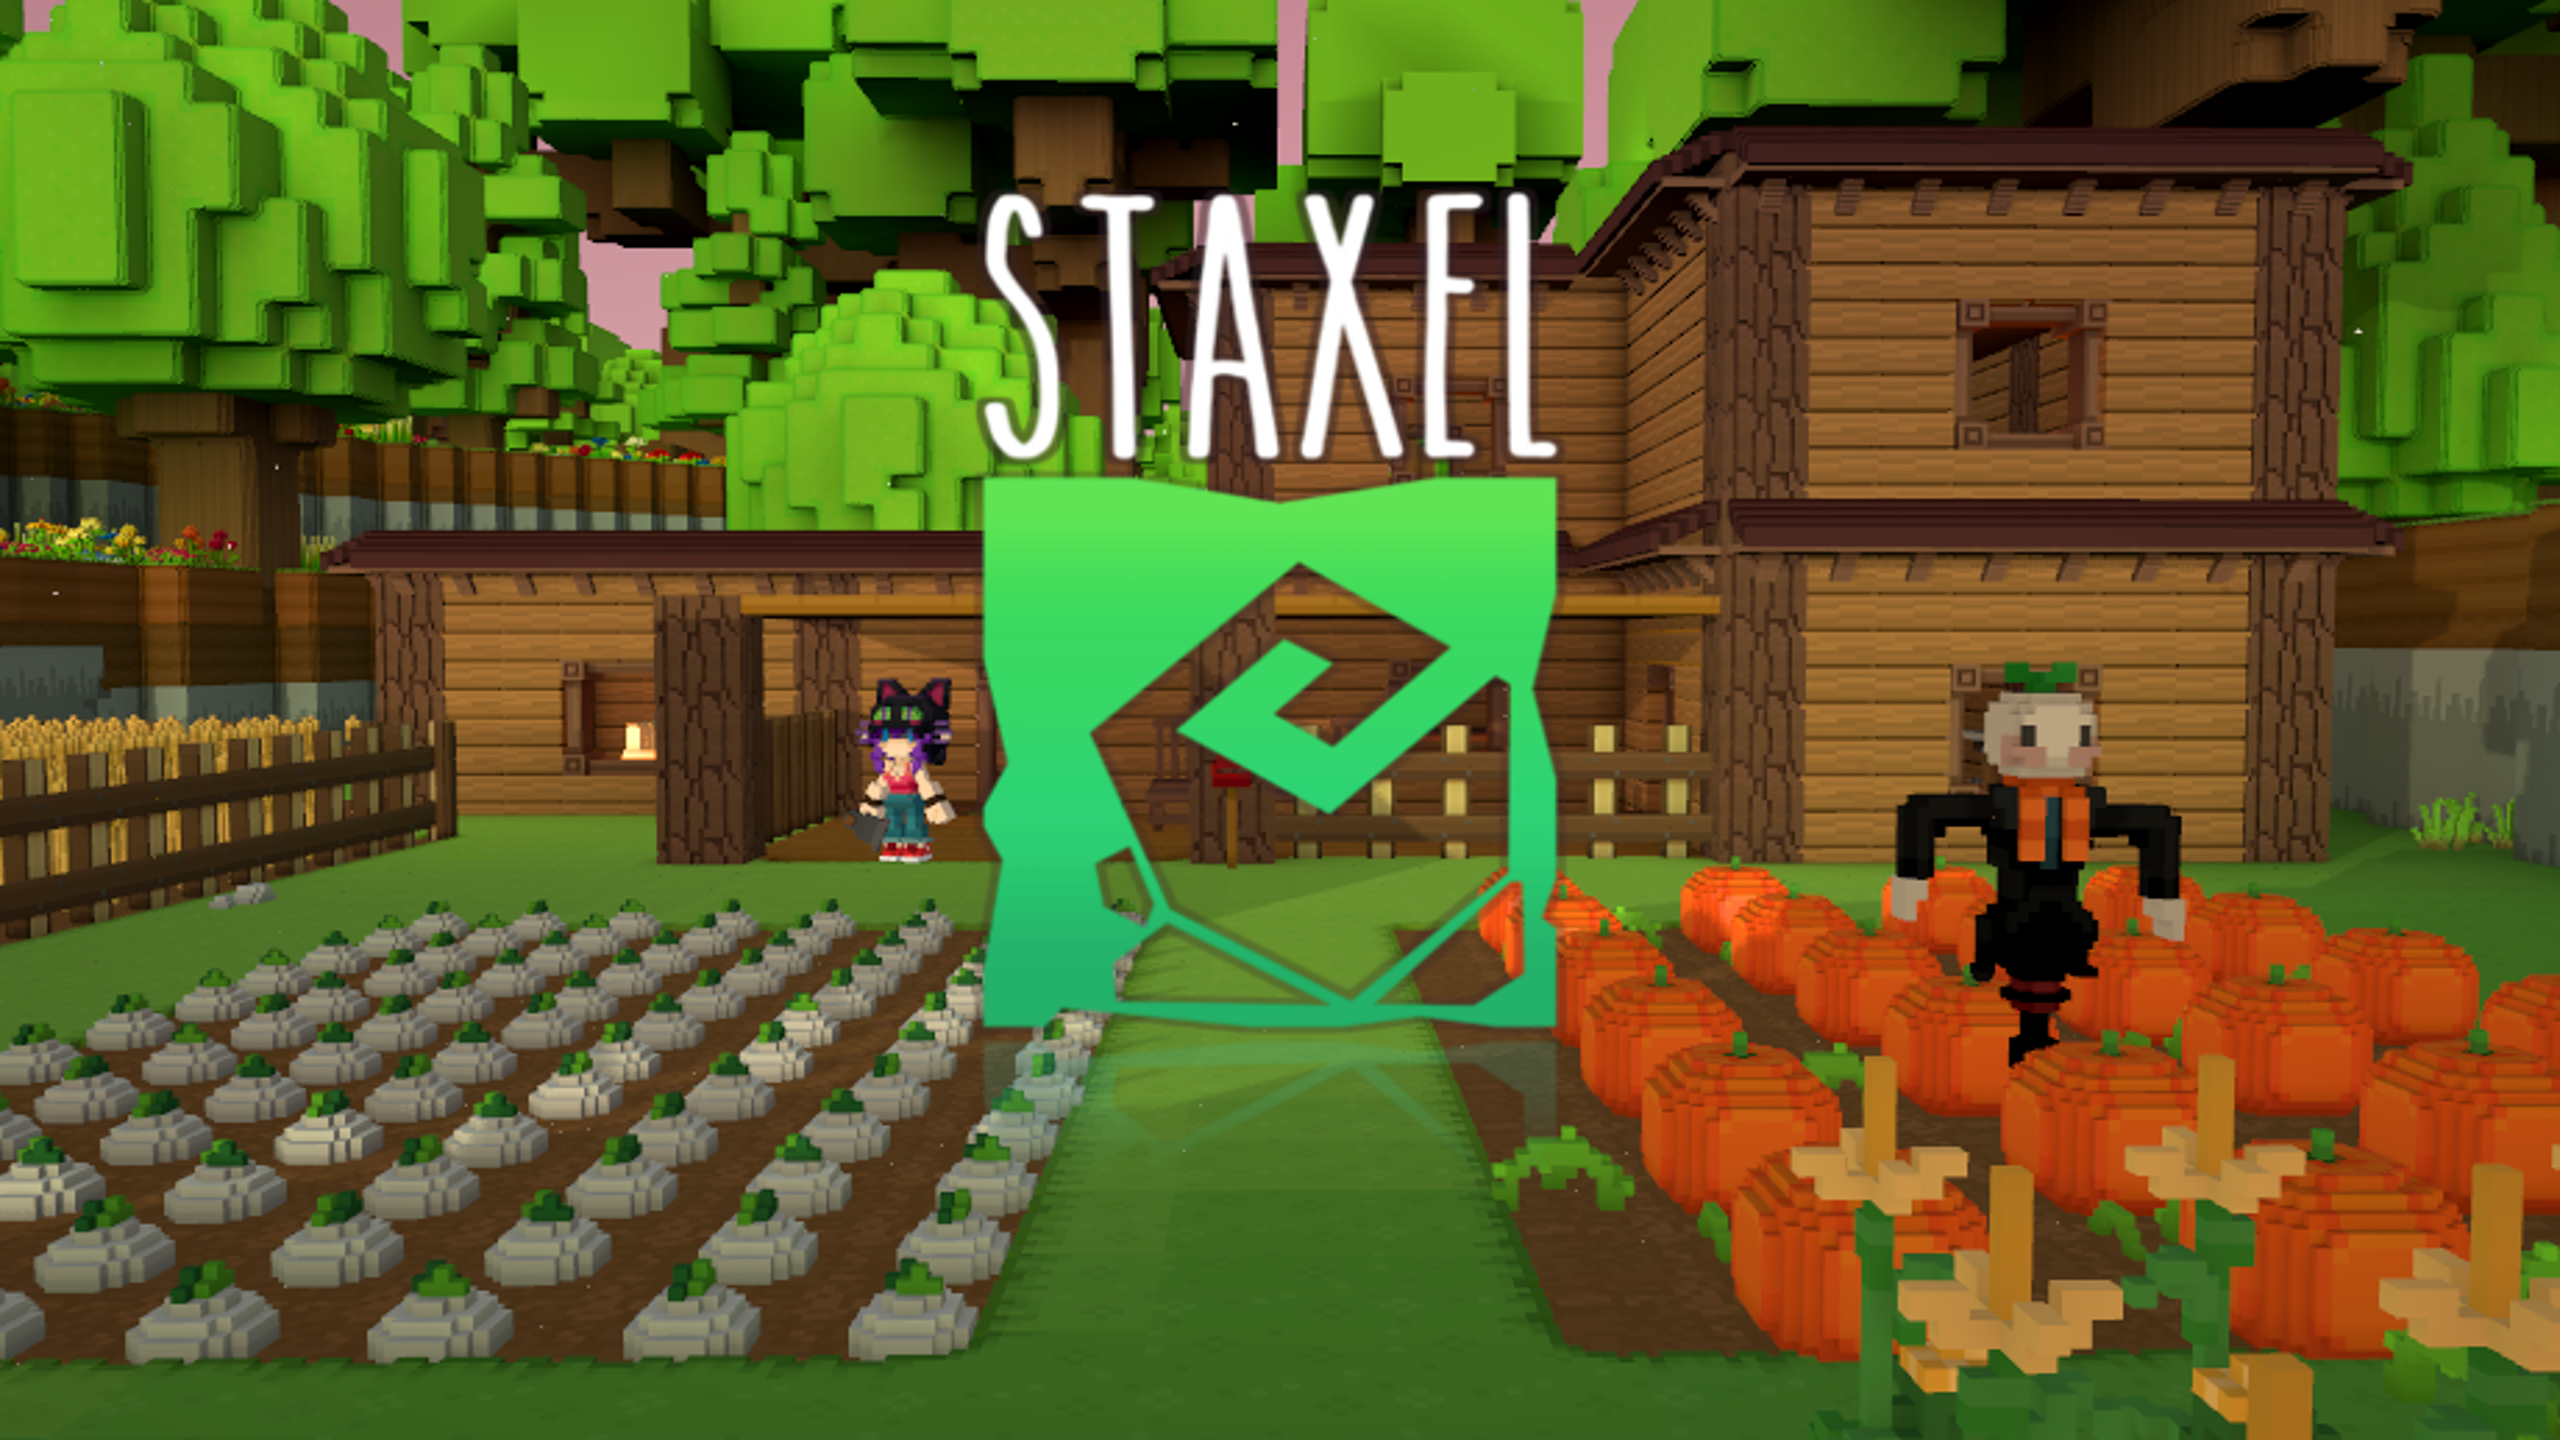 Staxel - A Multiplayer Farming Game For PC